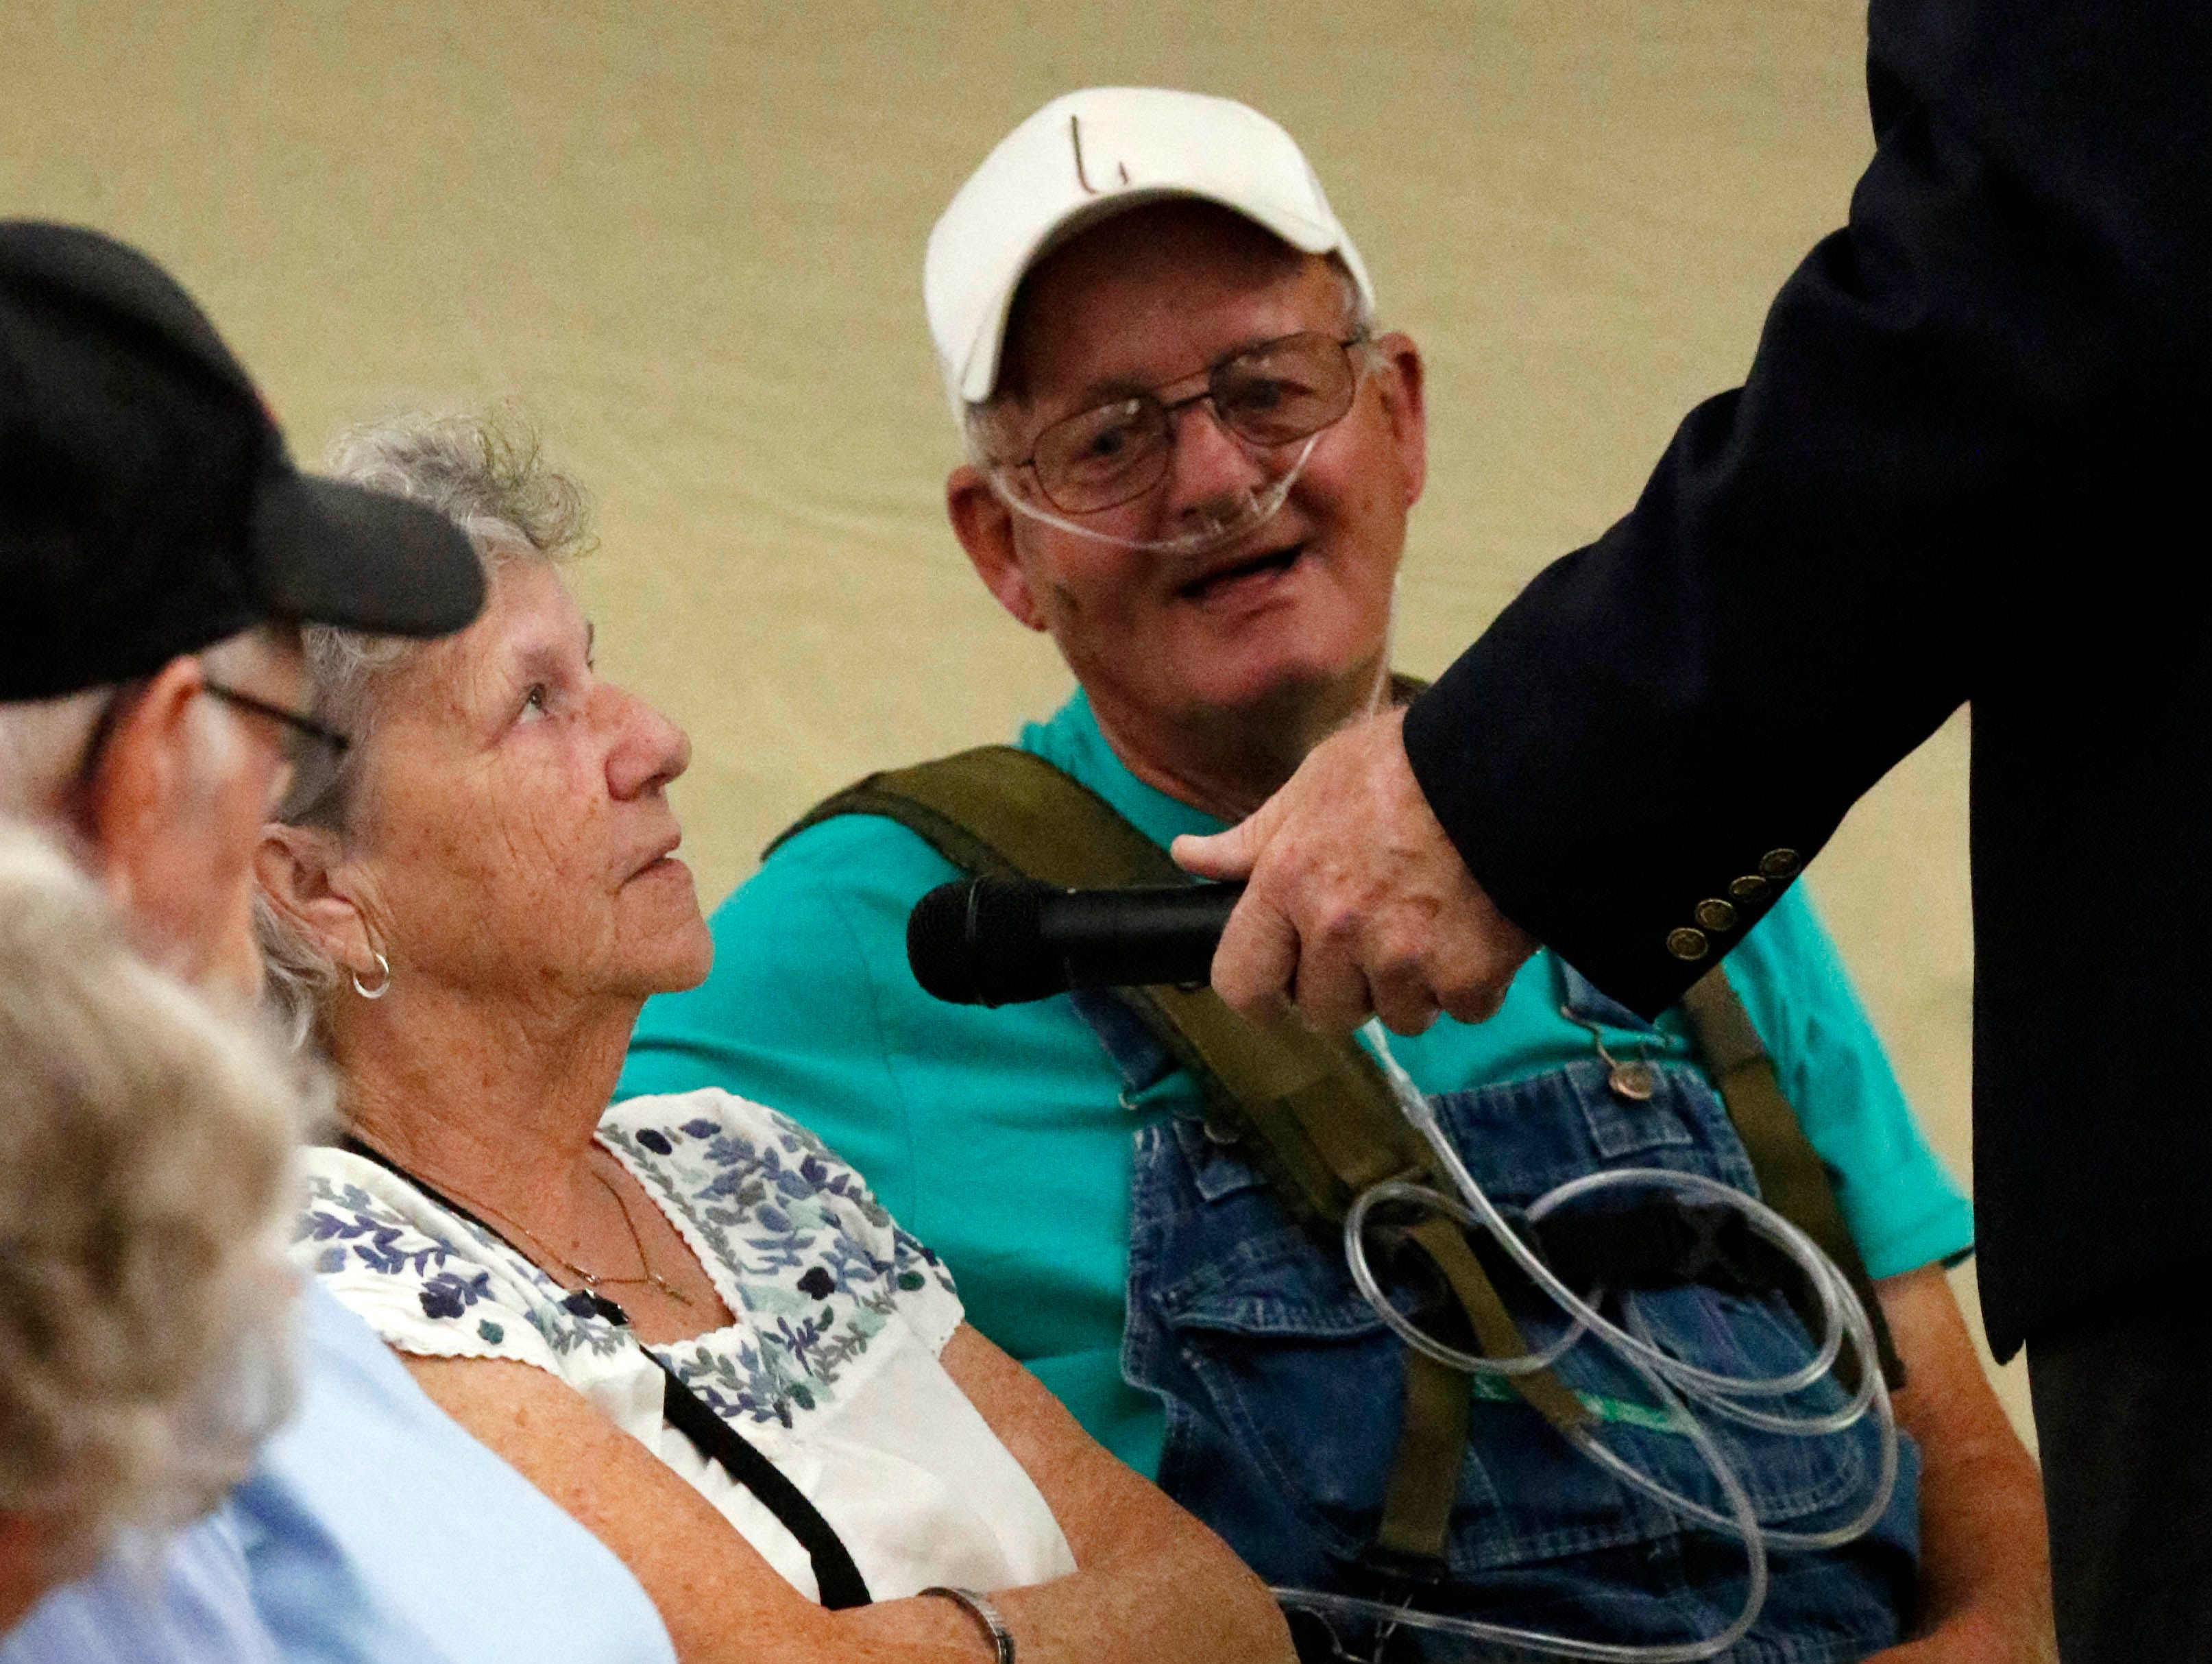 Couple married for 50 years or longer were honored during a live radio broadcast Wednesday, Oct. 11, 2018, at the Fairfield County Fair in Lancaster.